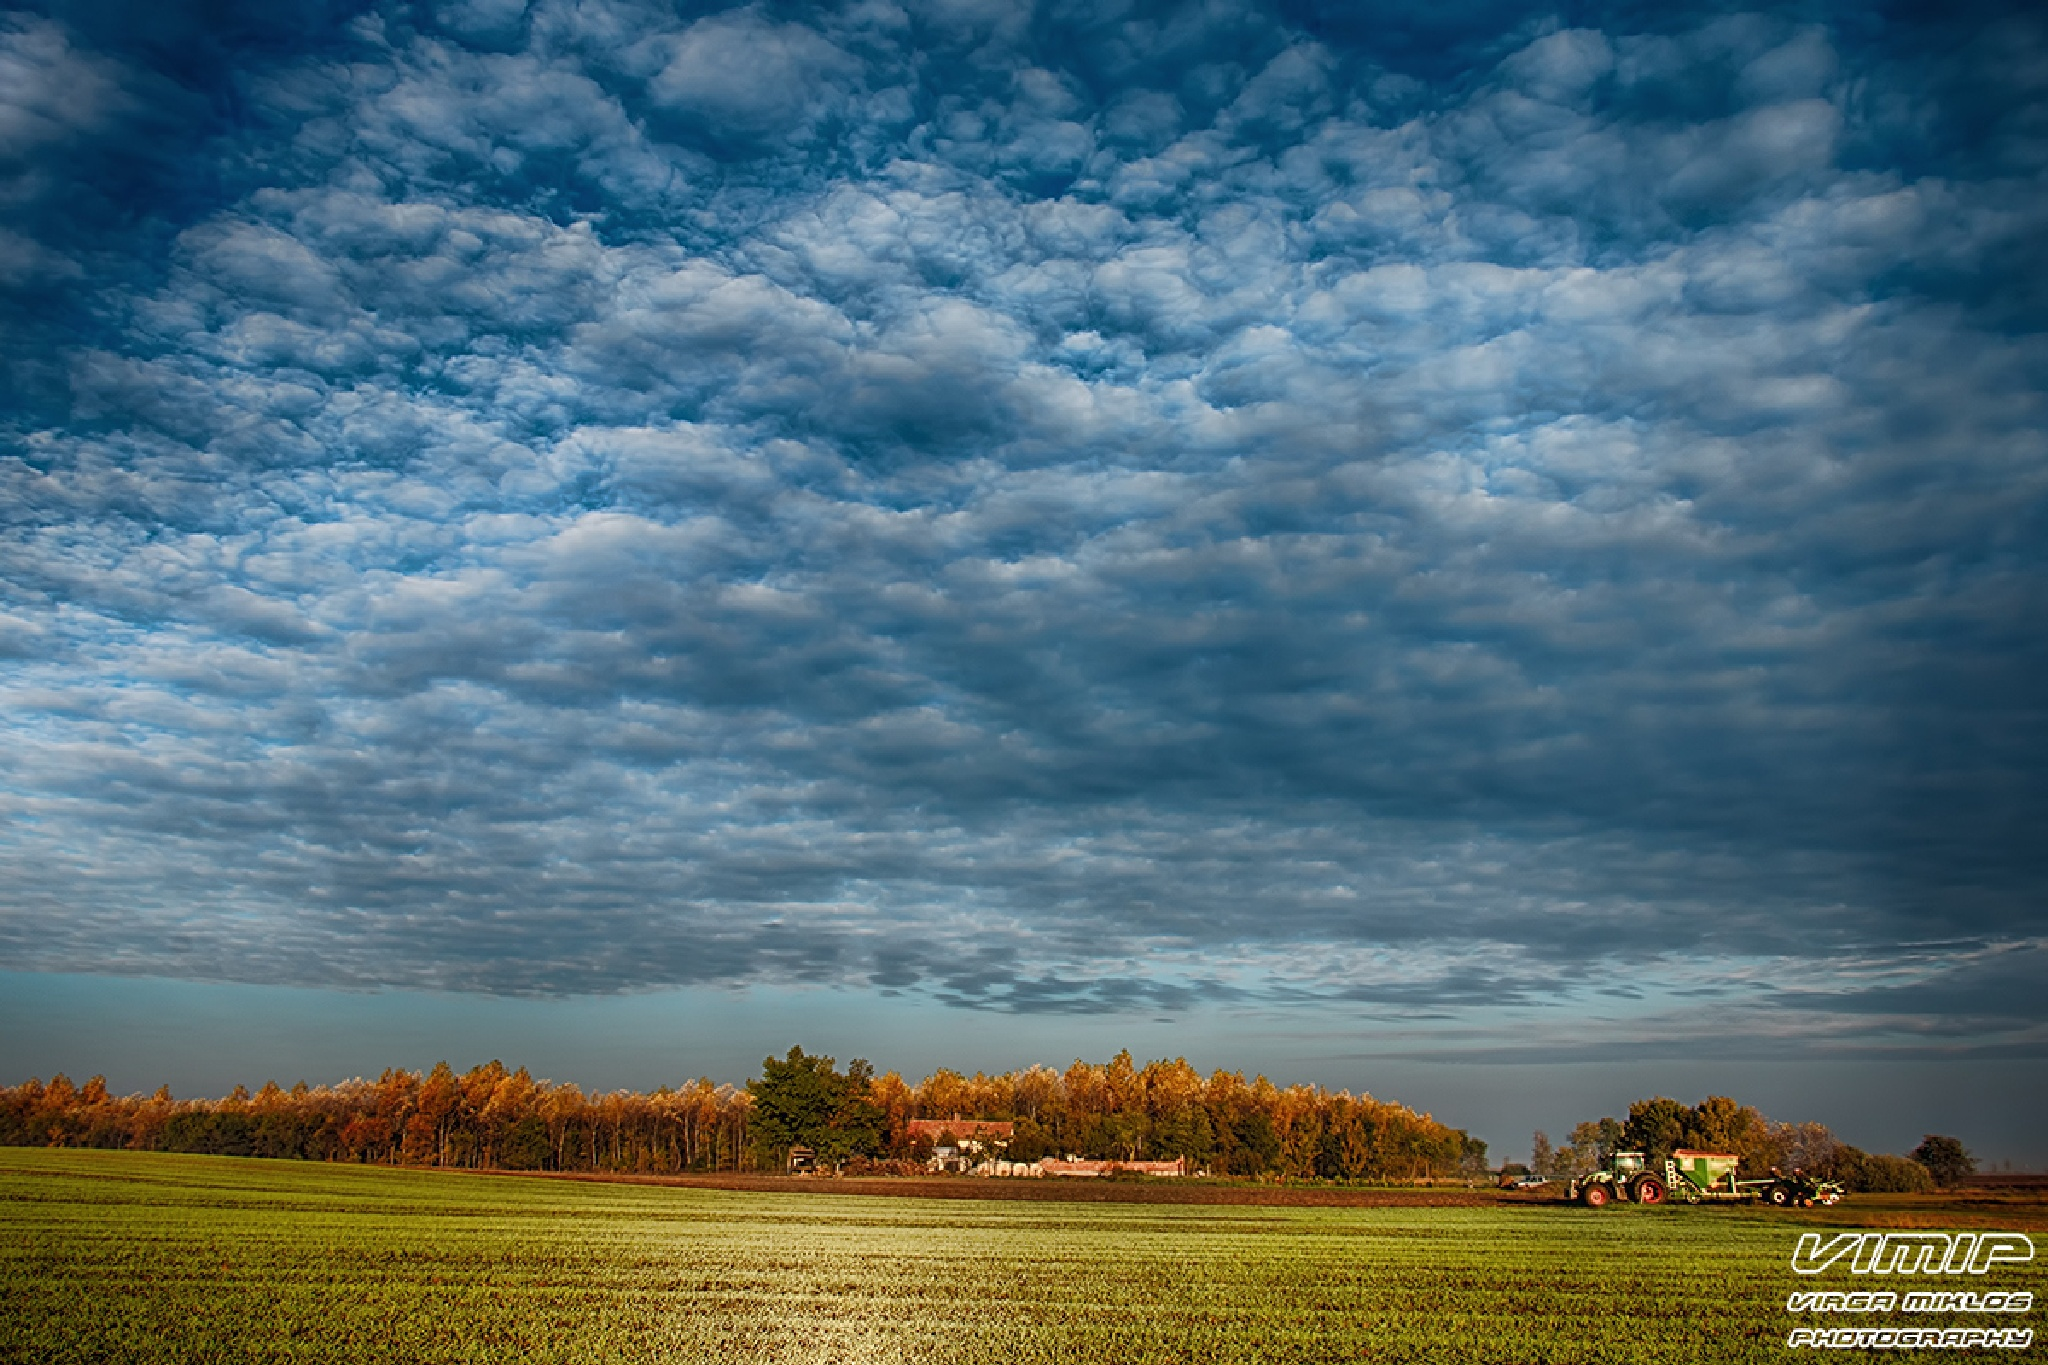 Hungarian countryside in autumn by VIMIP (Virga Miklos Photography)